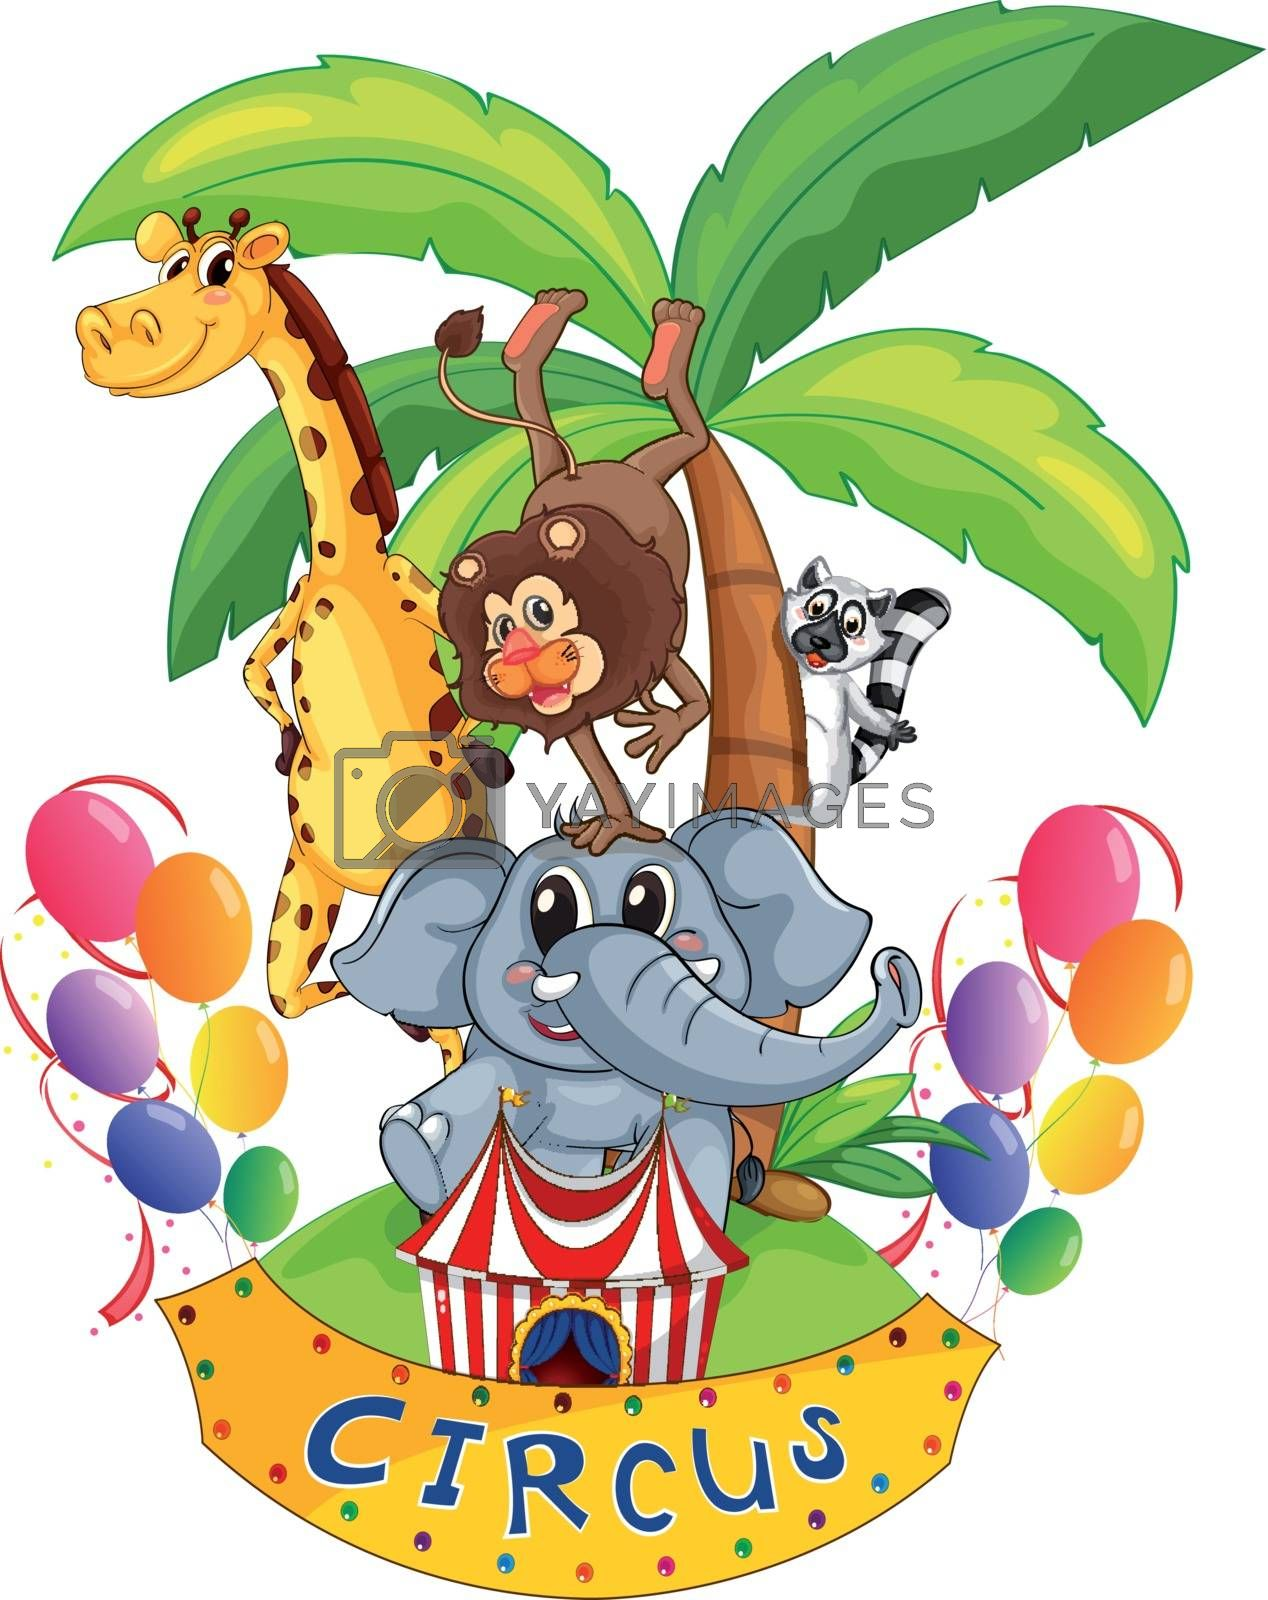 Illustration of an island full of circus animals on a white background